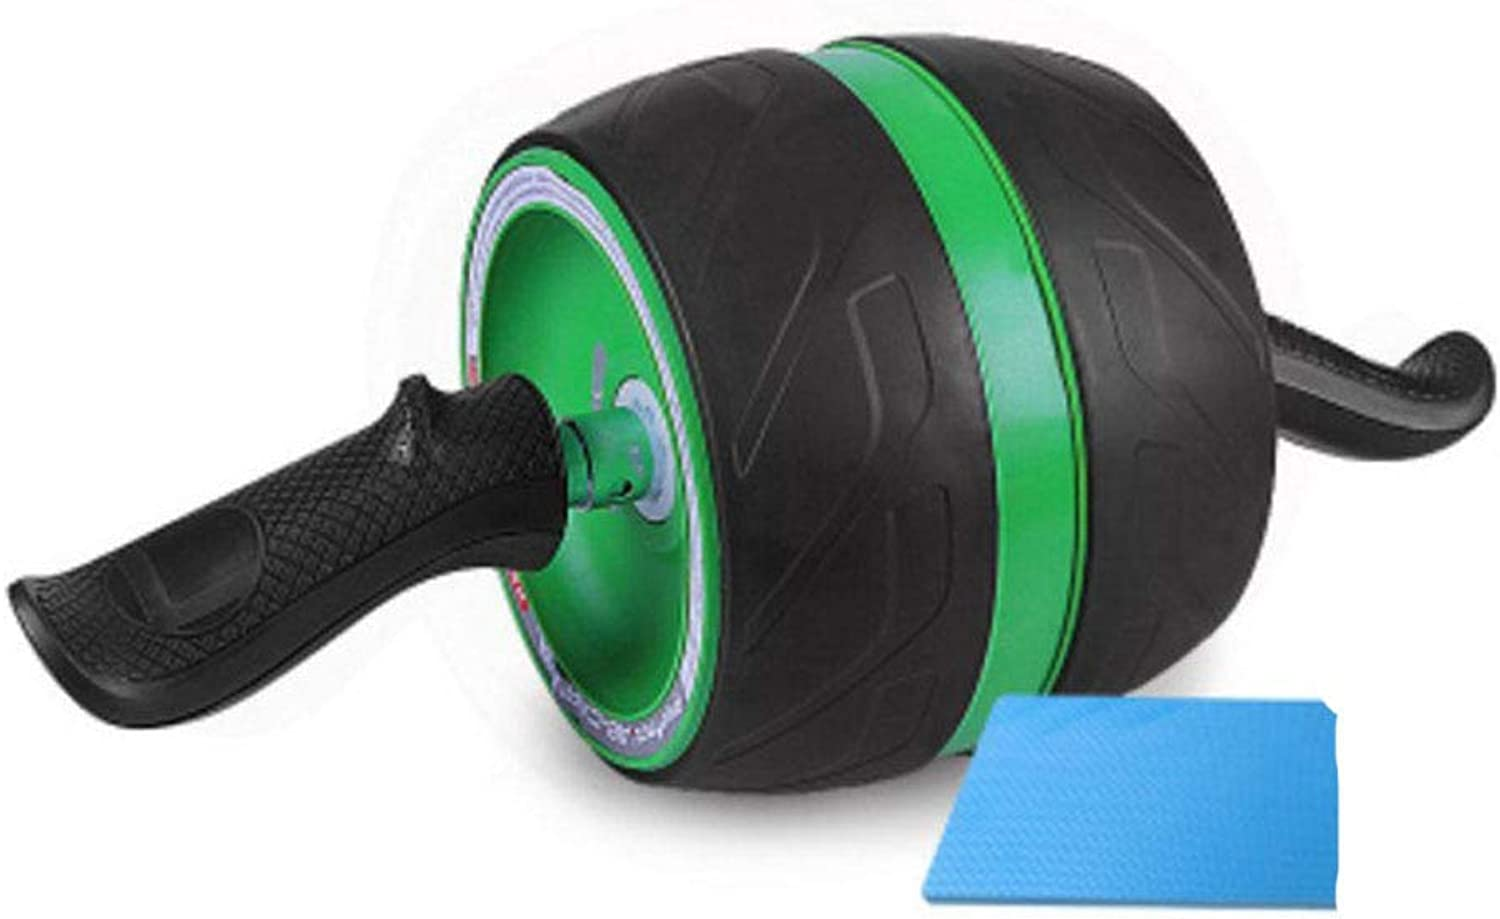 Abdominal Exerciser Abdominal Exercise Roller Wheel with Knee Pad and Comfort Foam Handles